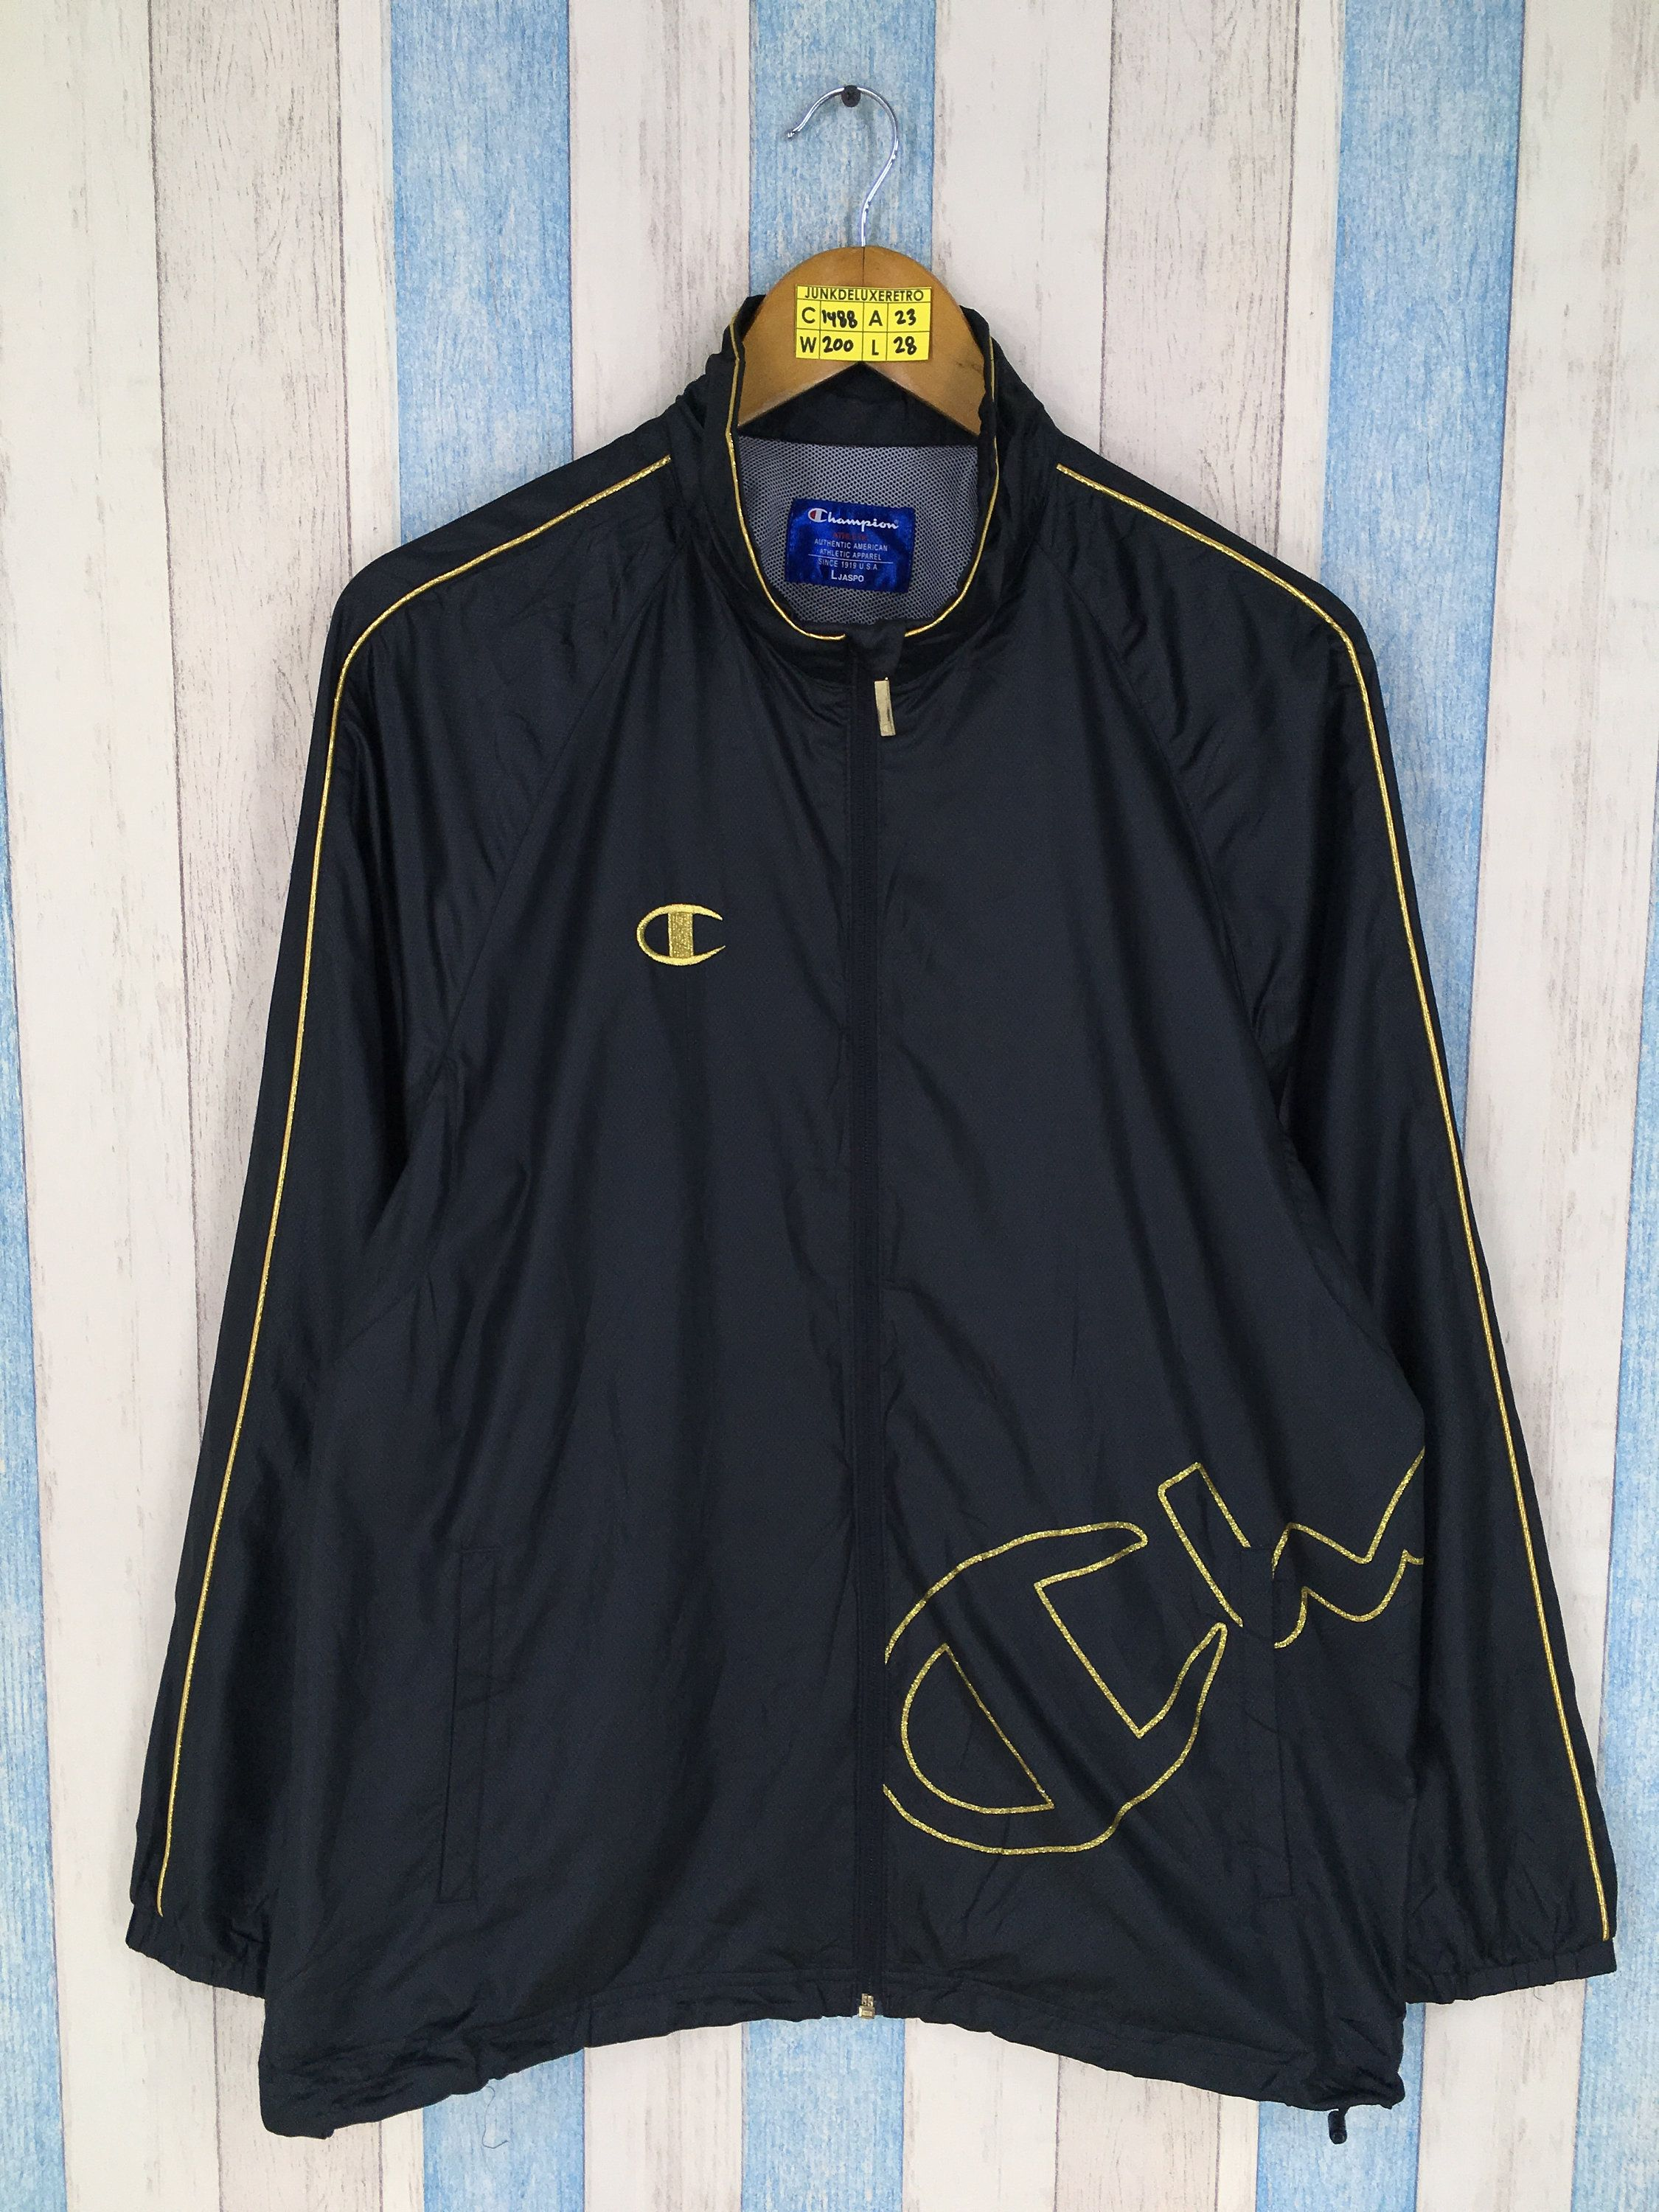 95222d3d5fdc Vintage CHAMPION Jacket Windbreaker Large 1990 s Champion Usa Sportswear  Champion Spell Out Windrunner Black Training Jacket Size L by  JunkDeluxeRetro on ...